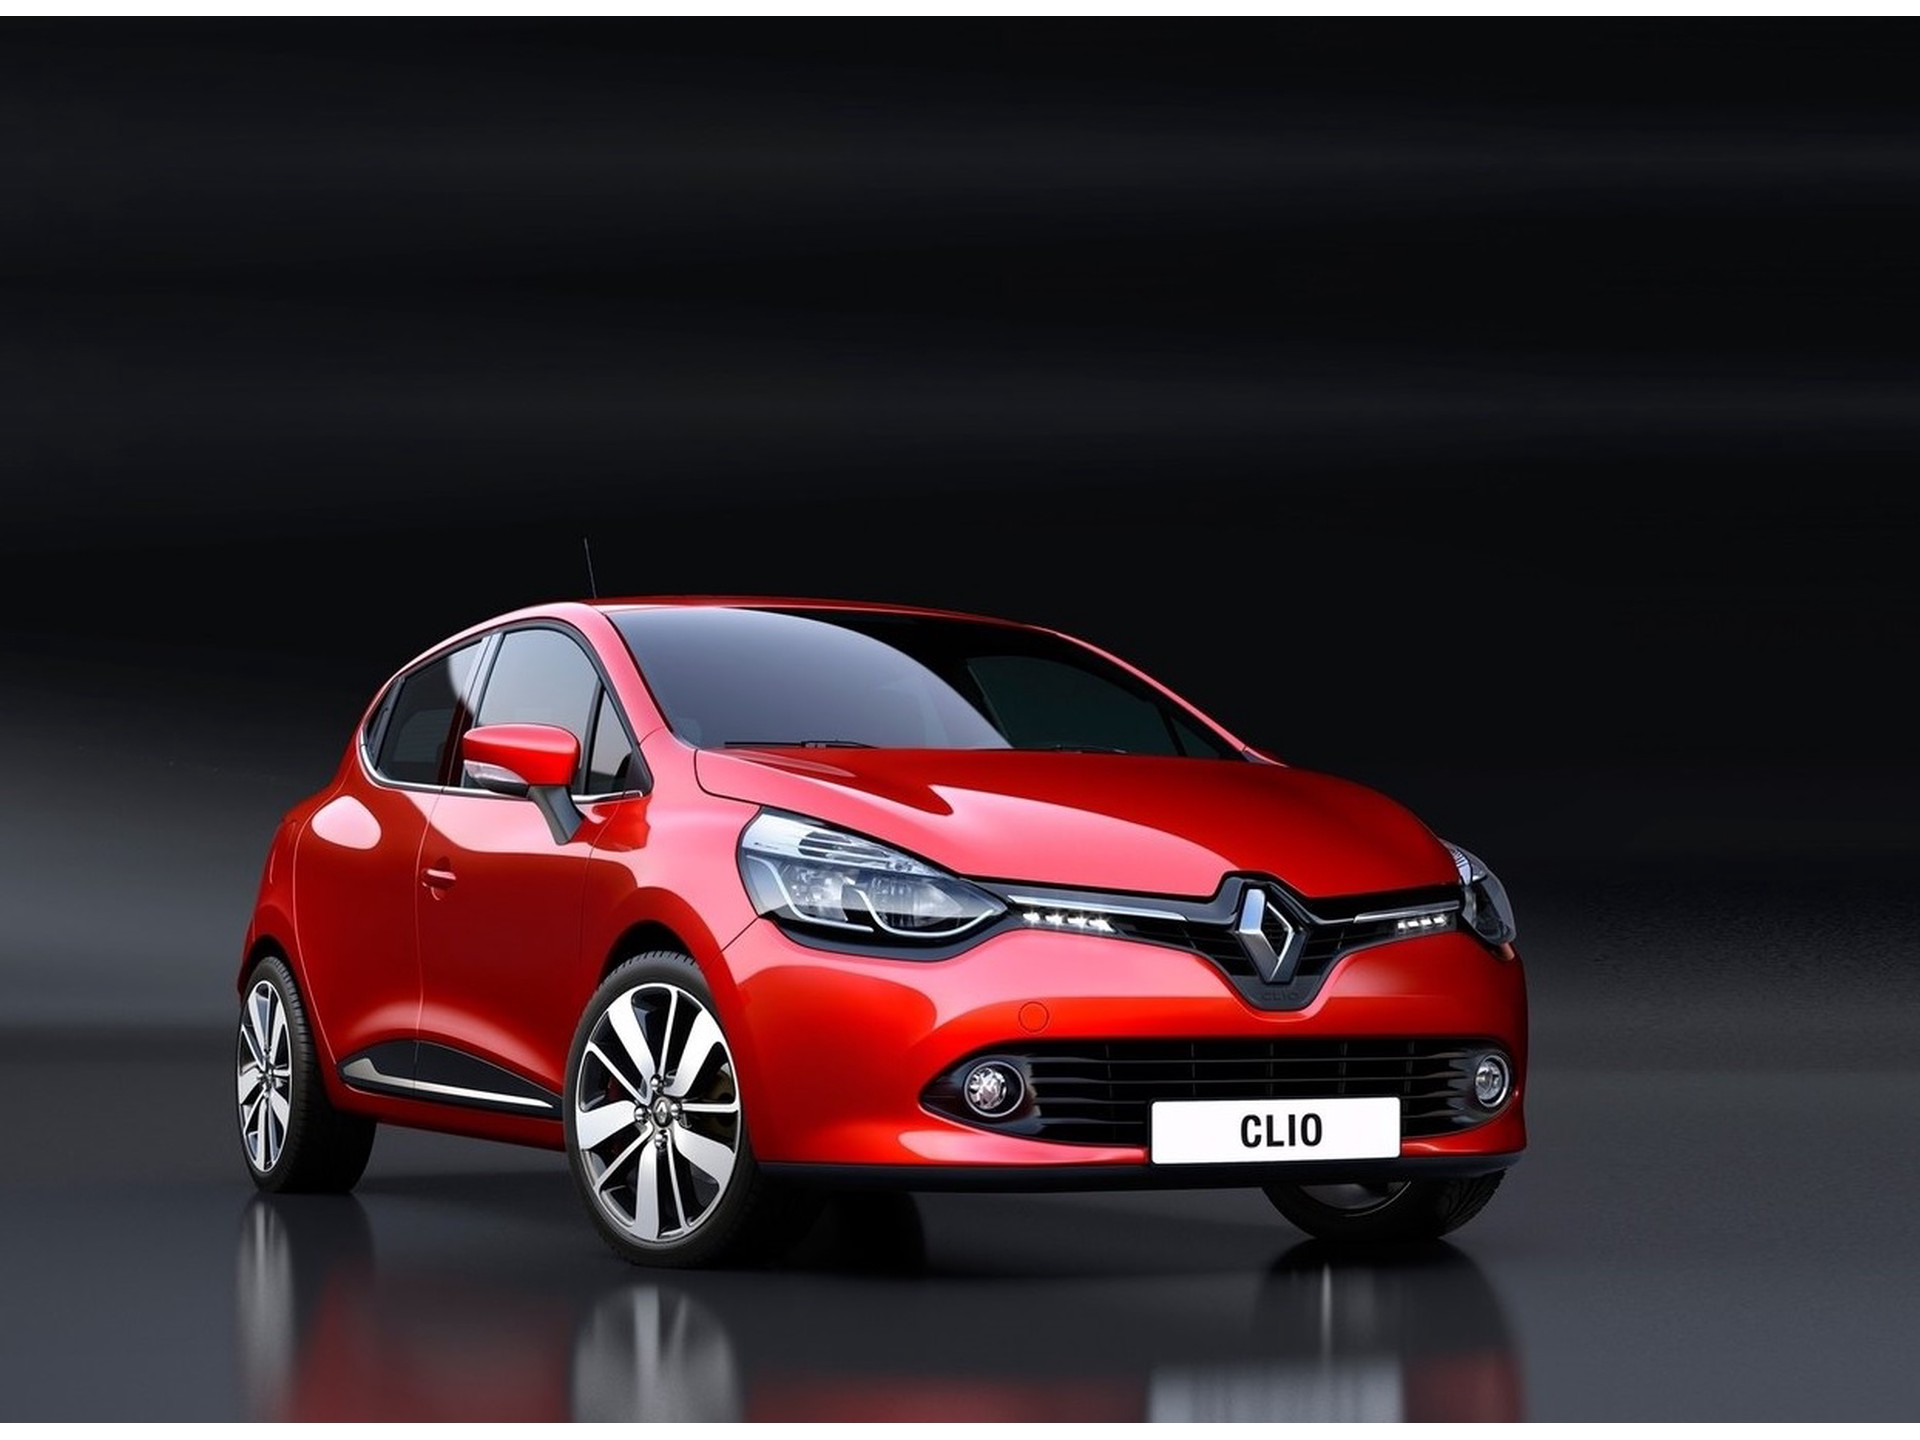 Renault-Clio-1.5 dCi Expression Full Operational lease-nieuweautodeal.nl